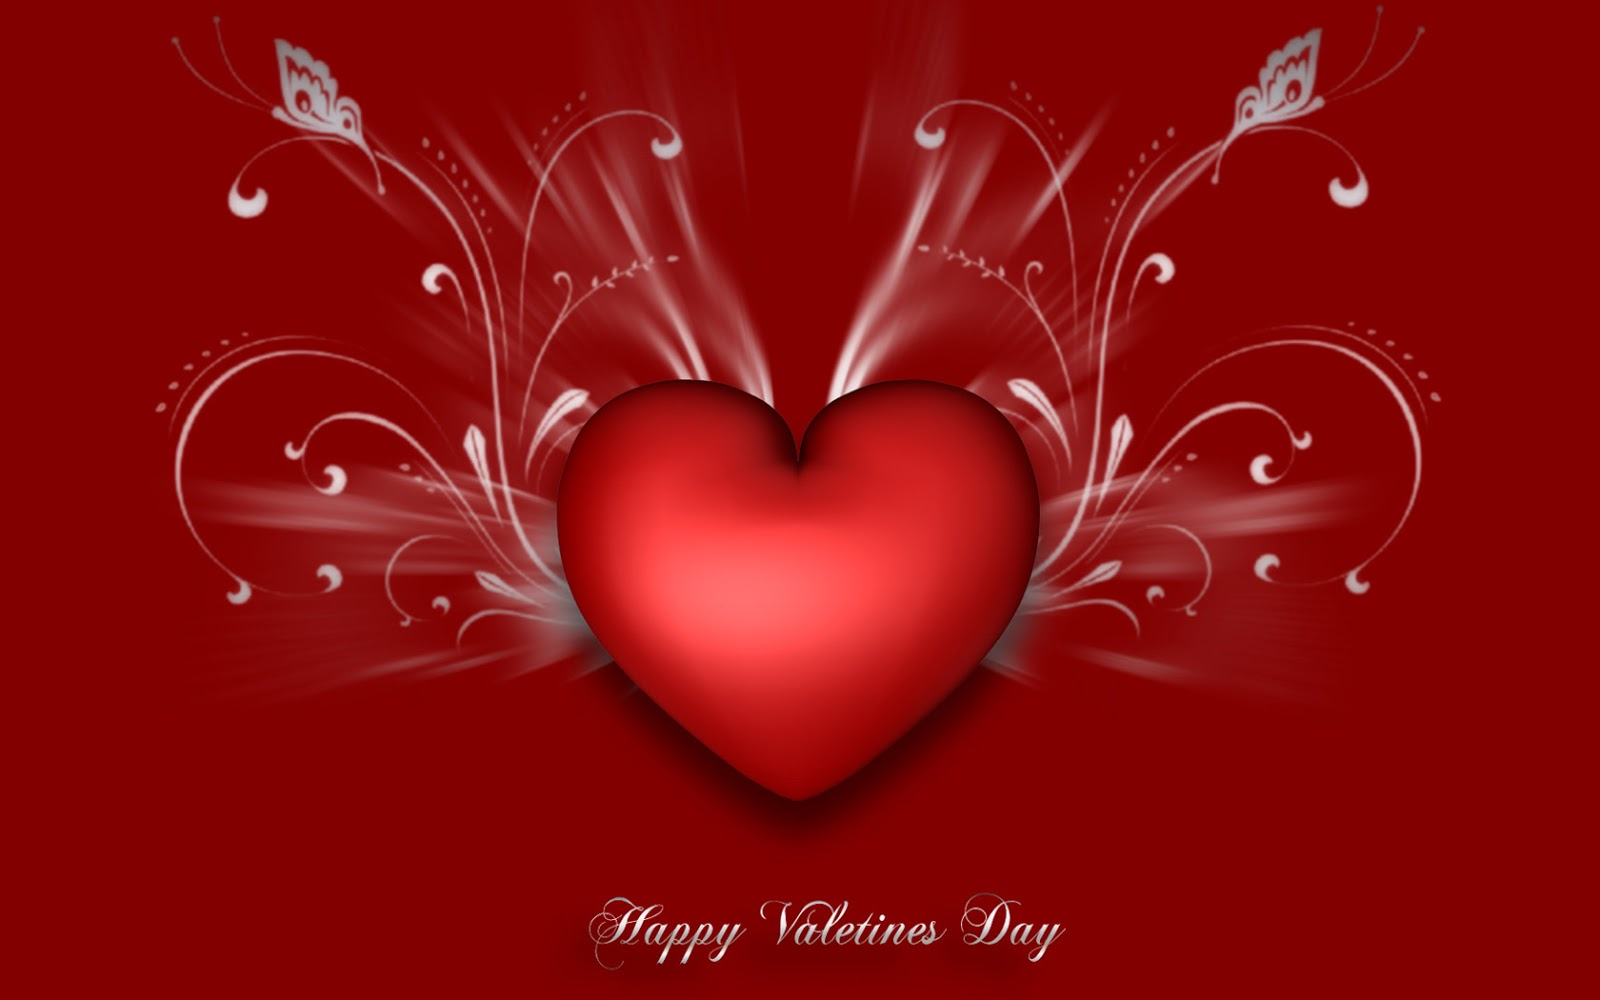 valentines day funny wallpaper 2013  Funny Pictures images Online 1600x1000